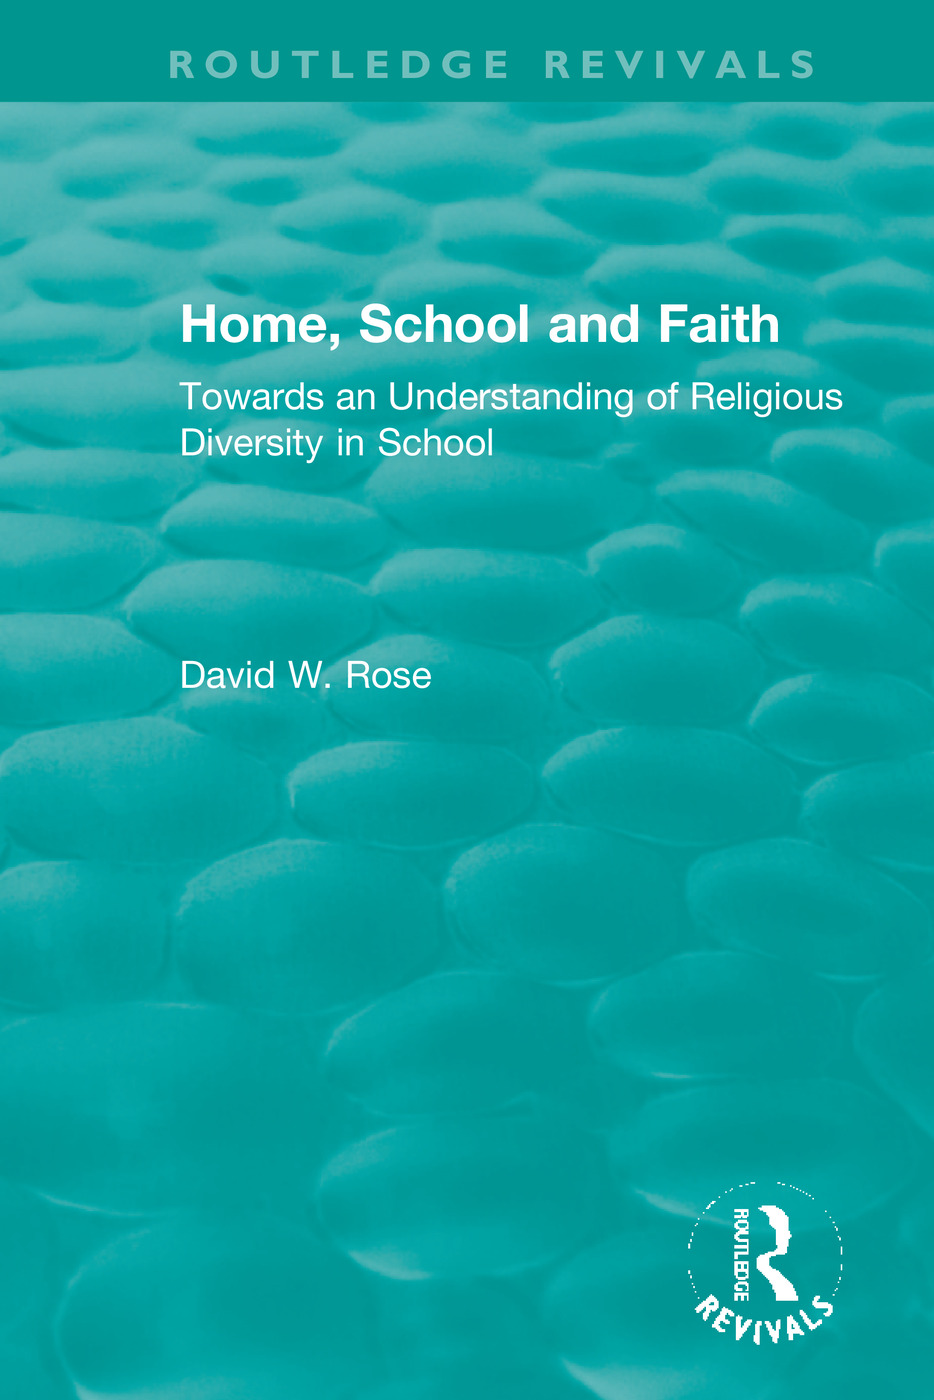 Home, School and Faith: Towards an Understanding of Religious Diversity in School book cover